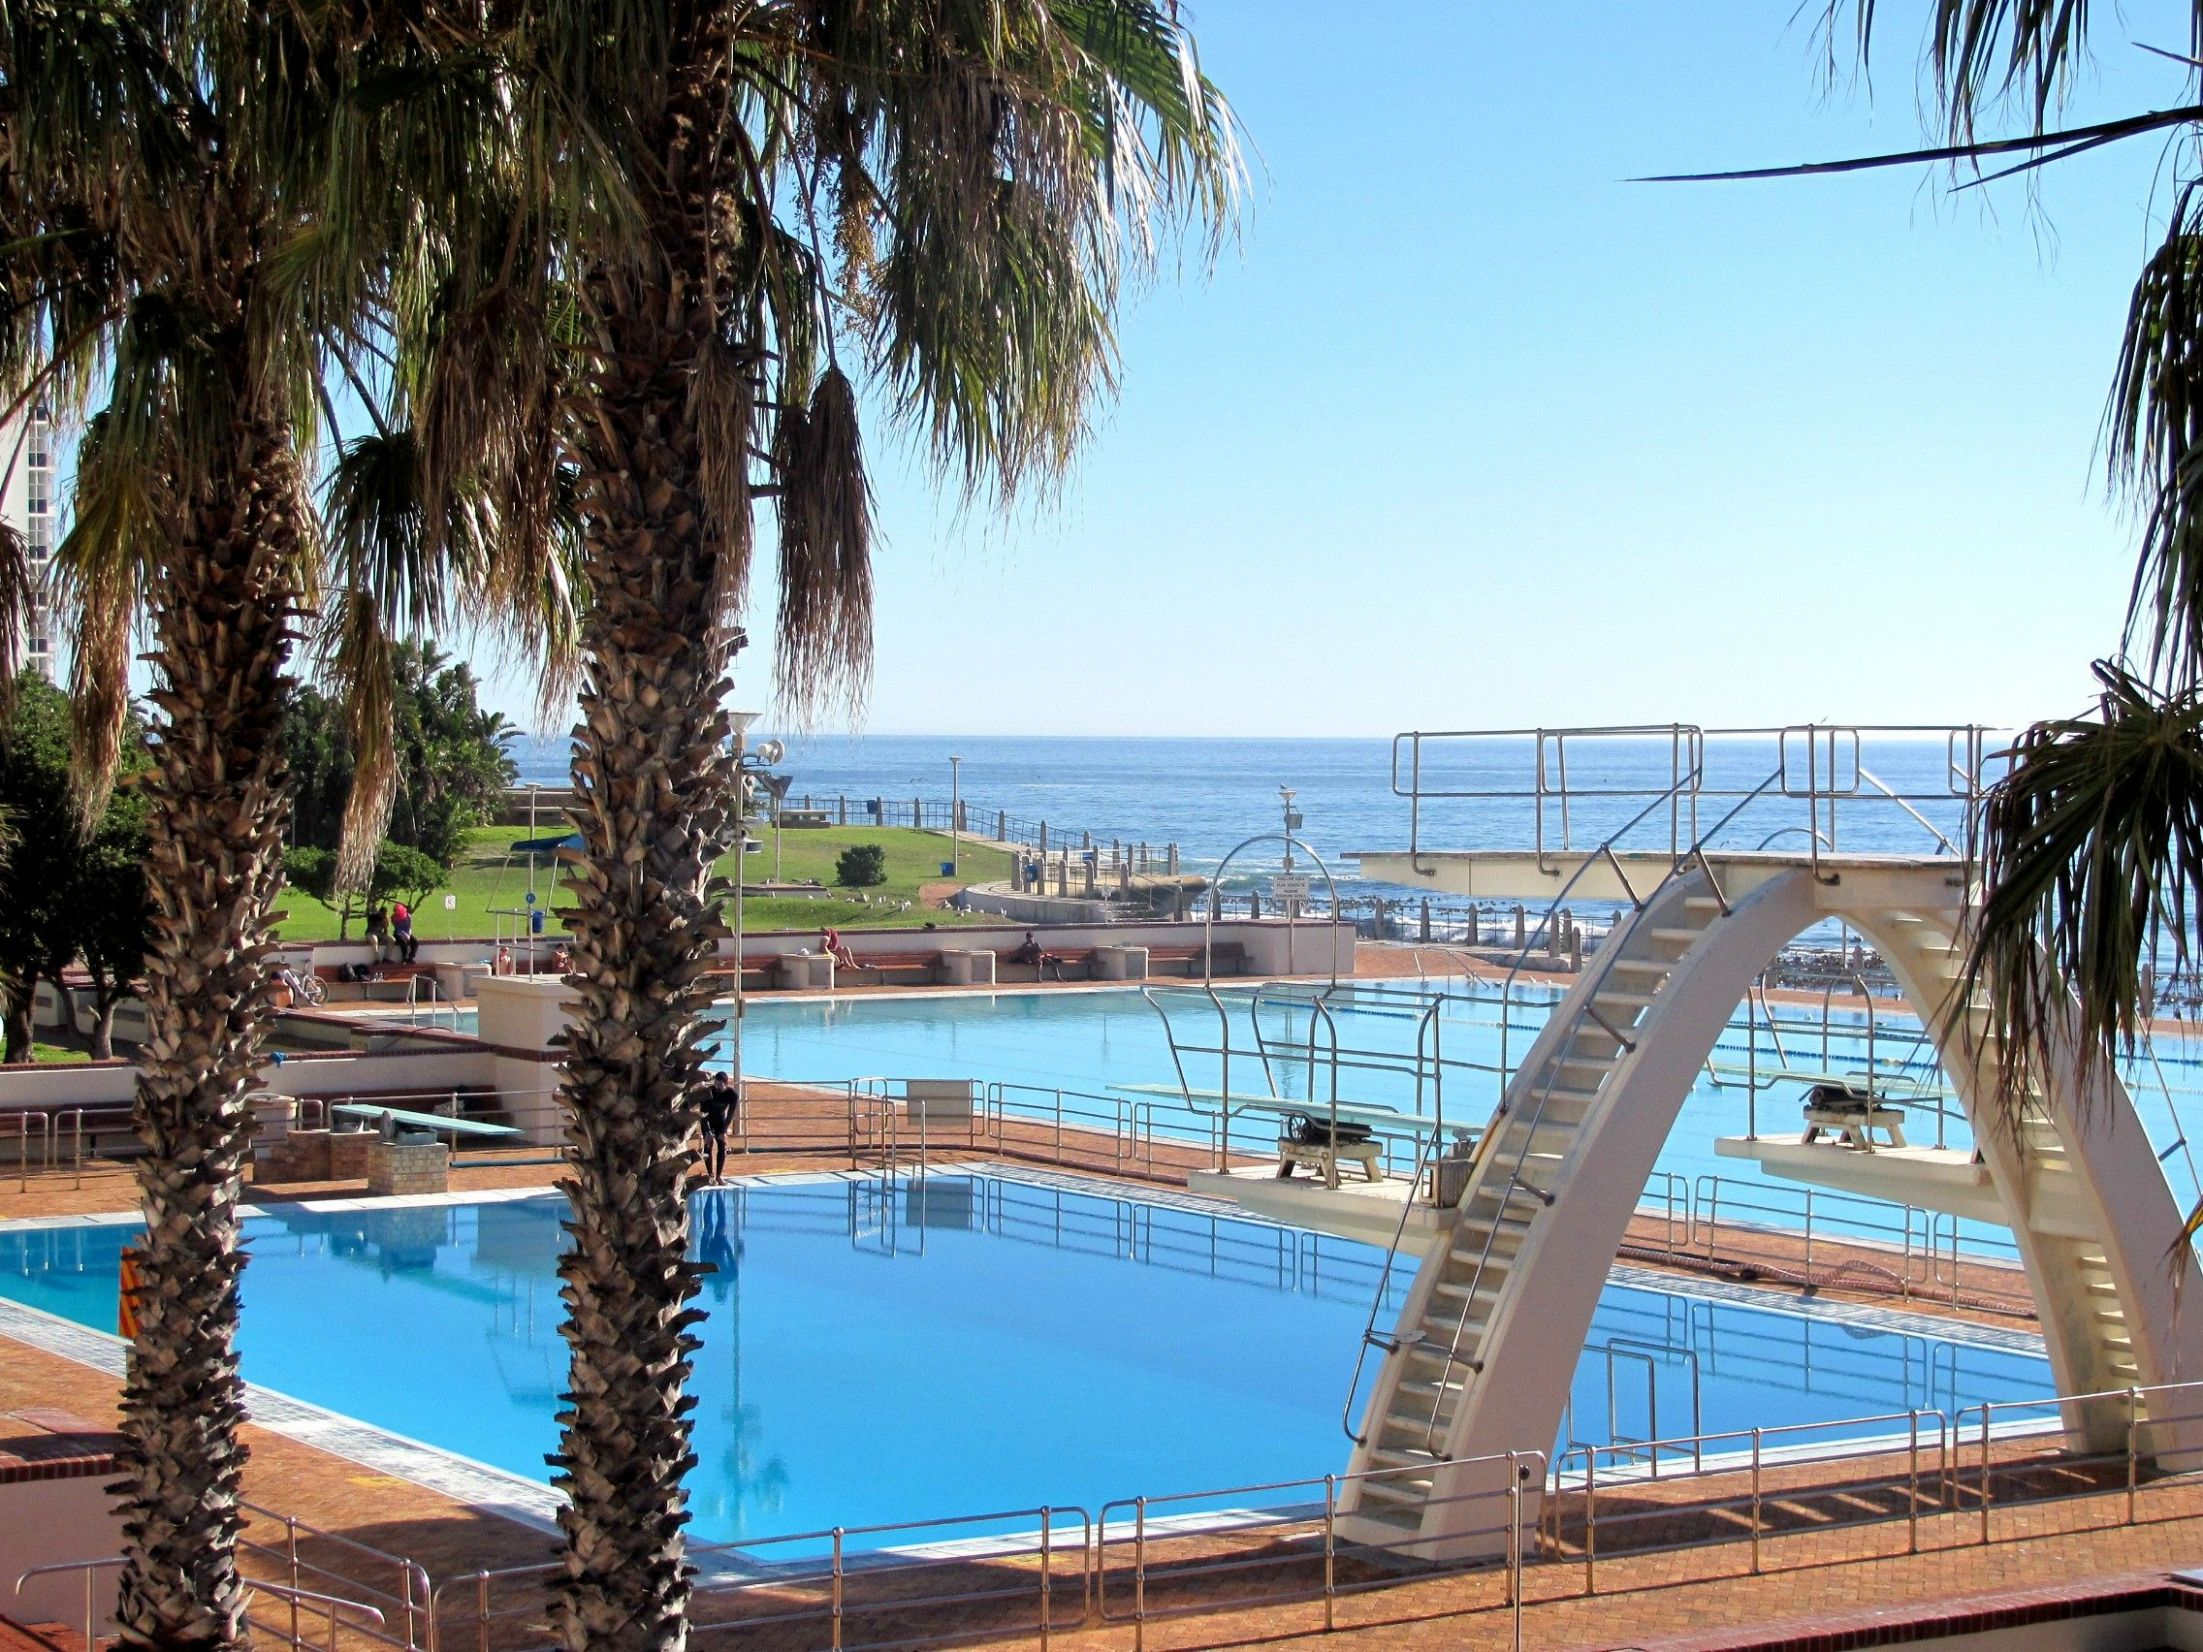 Sea Point Swimming pool, Cape Town | Cape town south africa, Sea ..